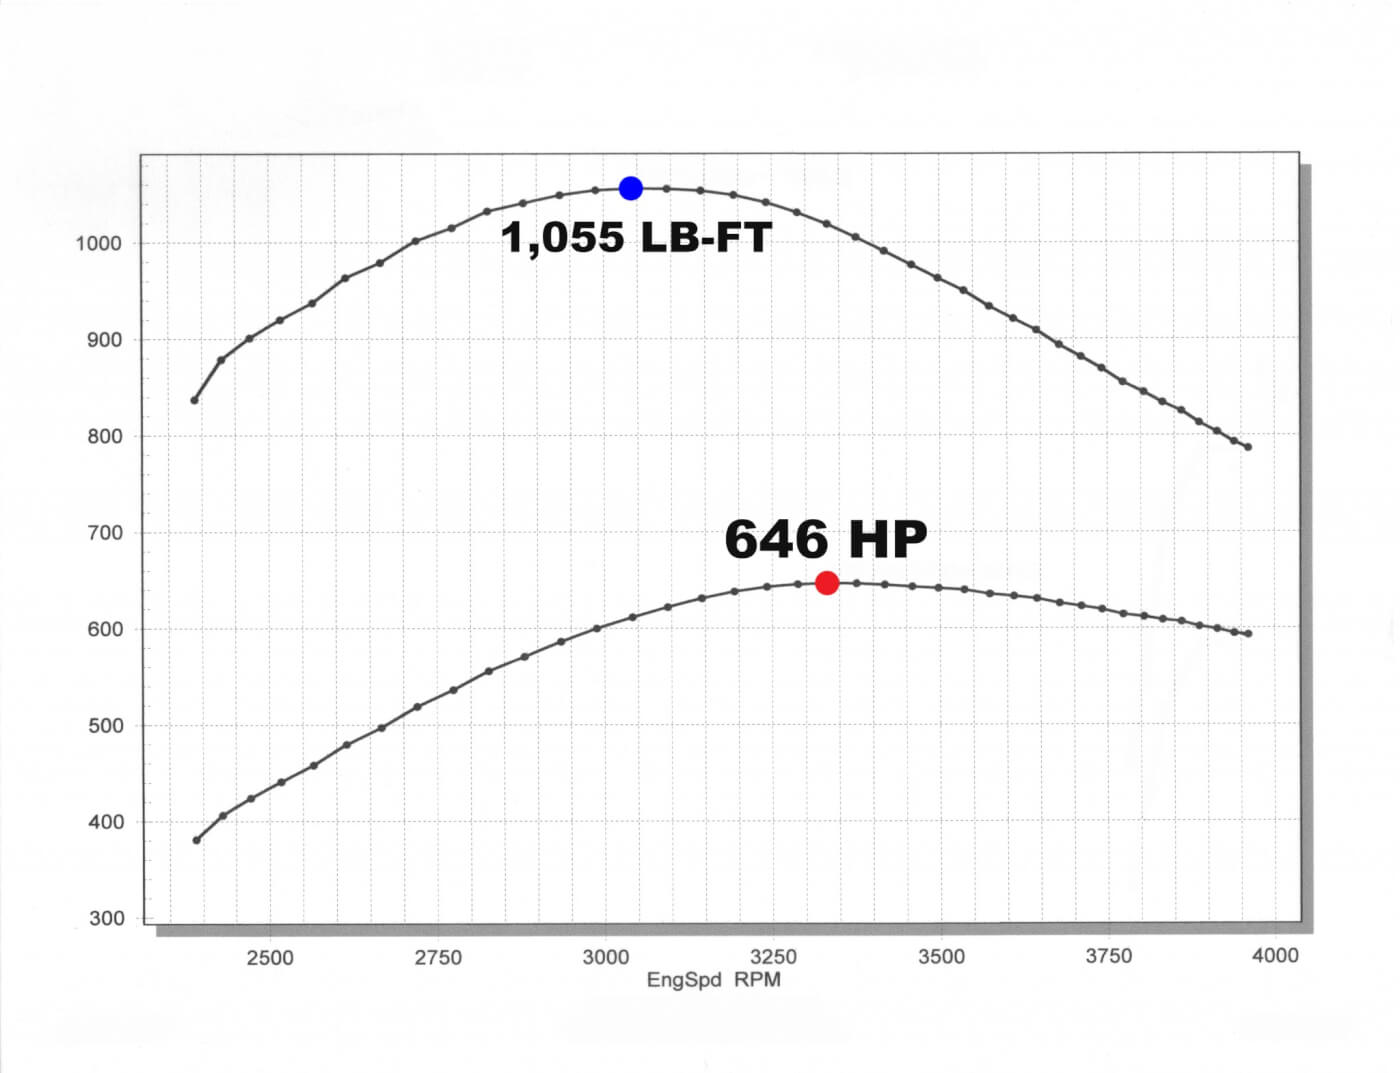 In this dyno graph you can clearly see that Kaden's tuner, Rob Coddens of Adrenaline Truck Performance, knows the danger in making 650 hp on stock LMM pistons. Notice that peak torque is made at 3,000 rpm rather than at a much lower engine speed. This is done to keep cylinder pressure down (timing is ramped up progressively as rpm rises). While 1,300 lb-ft of torque could be made at 2,000 to 2,500 rpm, there is no telling how long the pistons would survive it. We like seeing smart tuning like this.